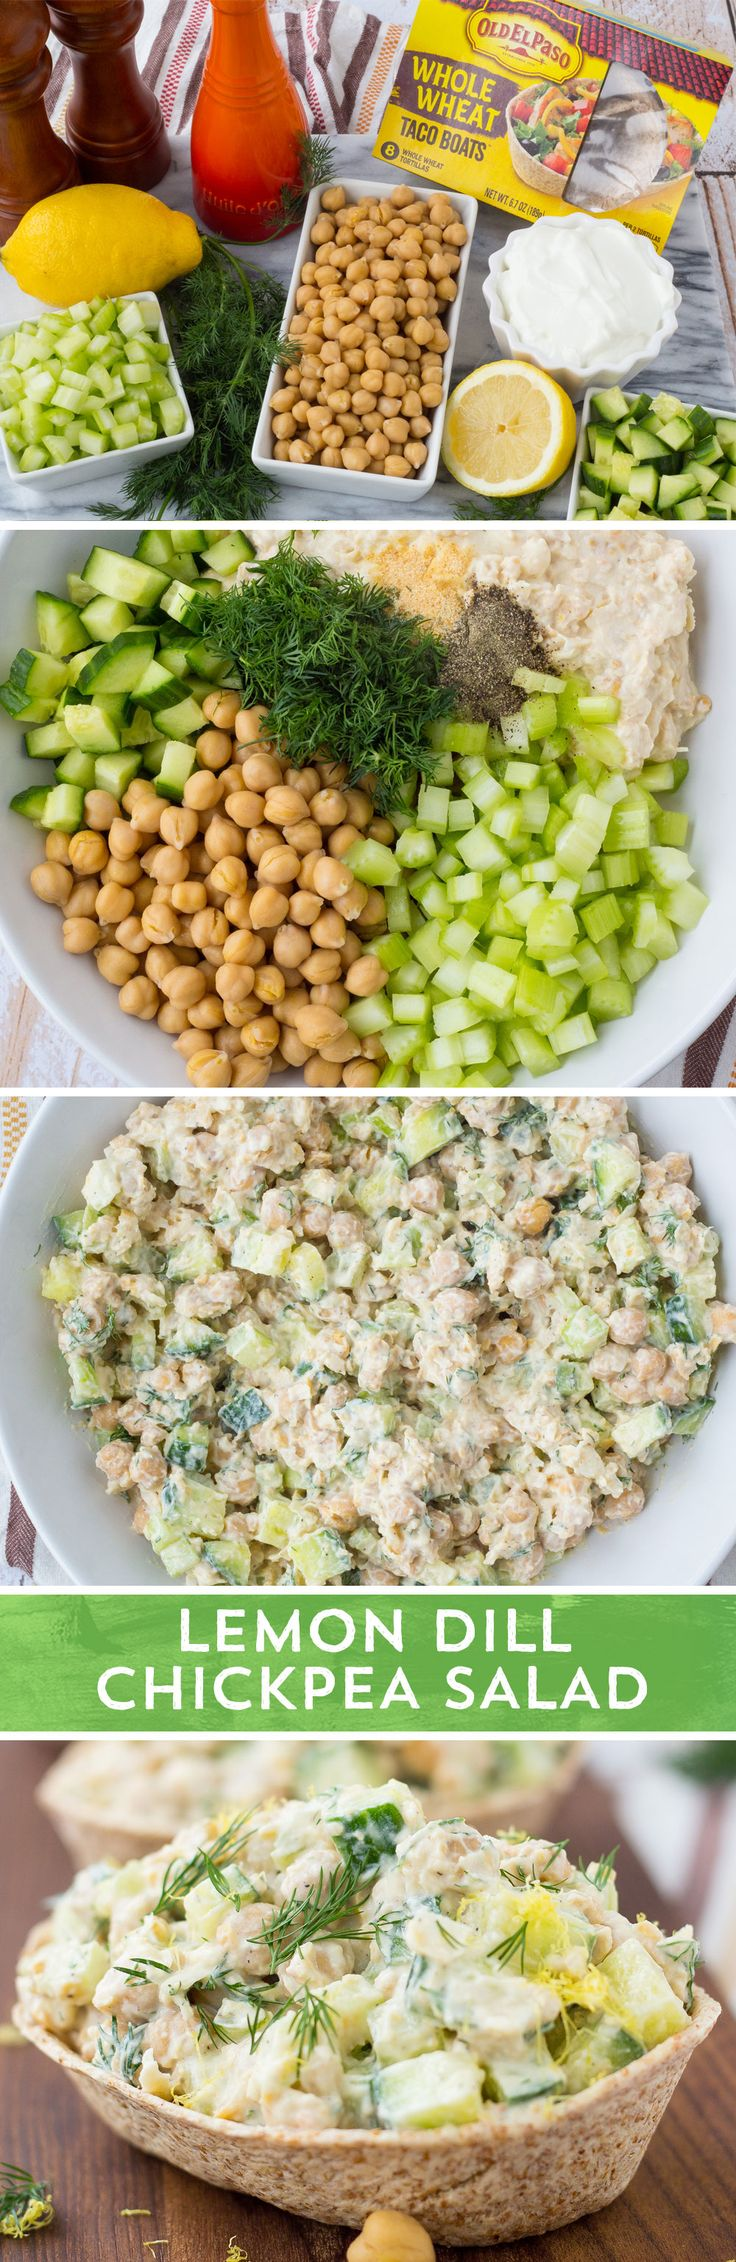 This healthy and easy vegetarian meal from @RachelCooksBlog will be your new go-to for lunch and dinner.For this flavorful and delicious salad simply mash half of the chickpeas with lemon juice, Greek yogurt, olive oil, and a few basic spices. Add the remaining chickpeas, cucumber and celery for some extra crunch and fresh dill for added flavor. Stir together, load into Old El Paso™ Whole Wheat Taco Boats, and enjoy!